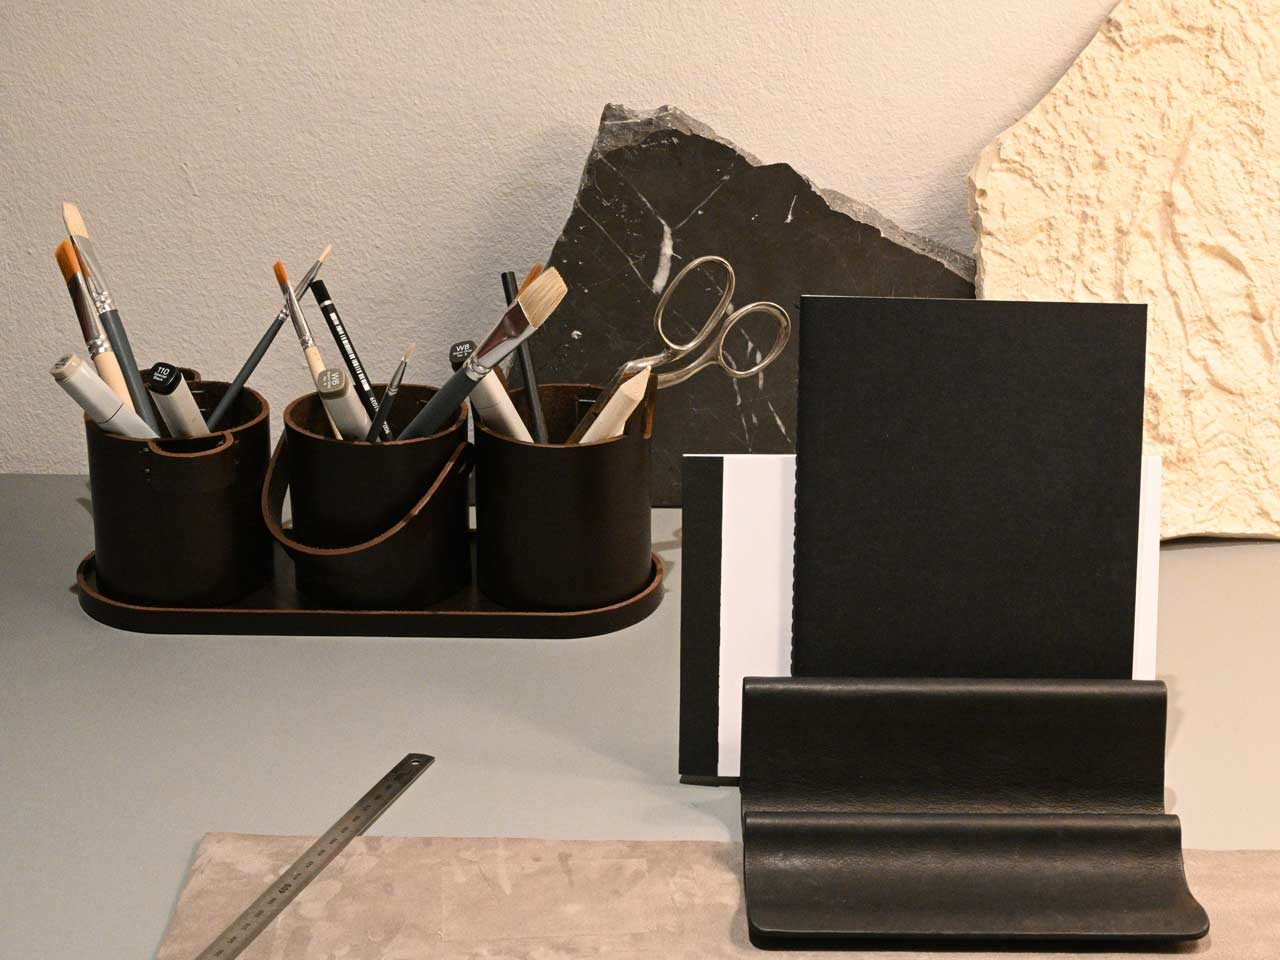 Buckets Desk Organiser - <p>Originally designed for an exhibition as large, outdoor objects in steel, Buckets is reinterpreted as a series of scaled-down vessels suitable for organising writing implements.</p>